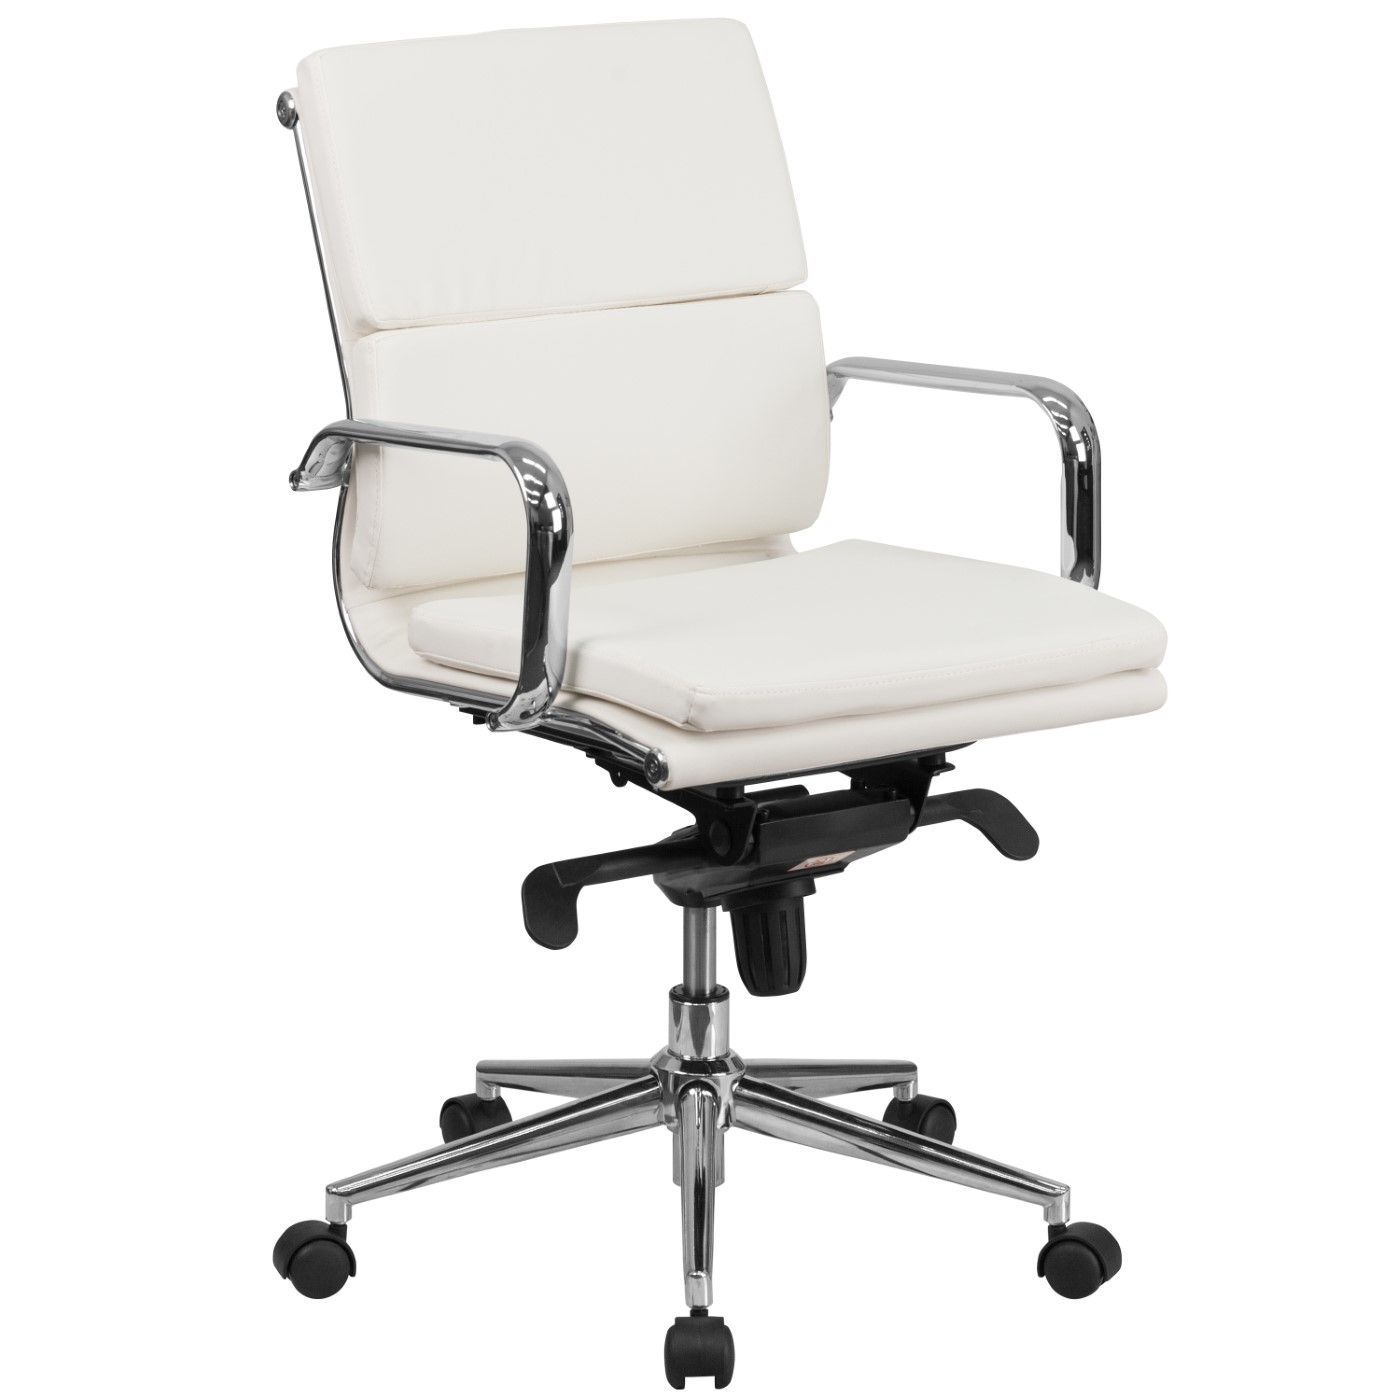 Mid-Back White LeatherSoft Executive Swivel Office Chair with Synchro-Tilt Mechanism and Arms